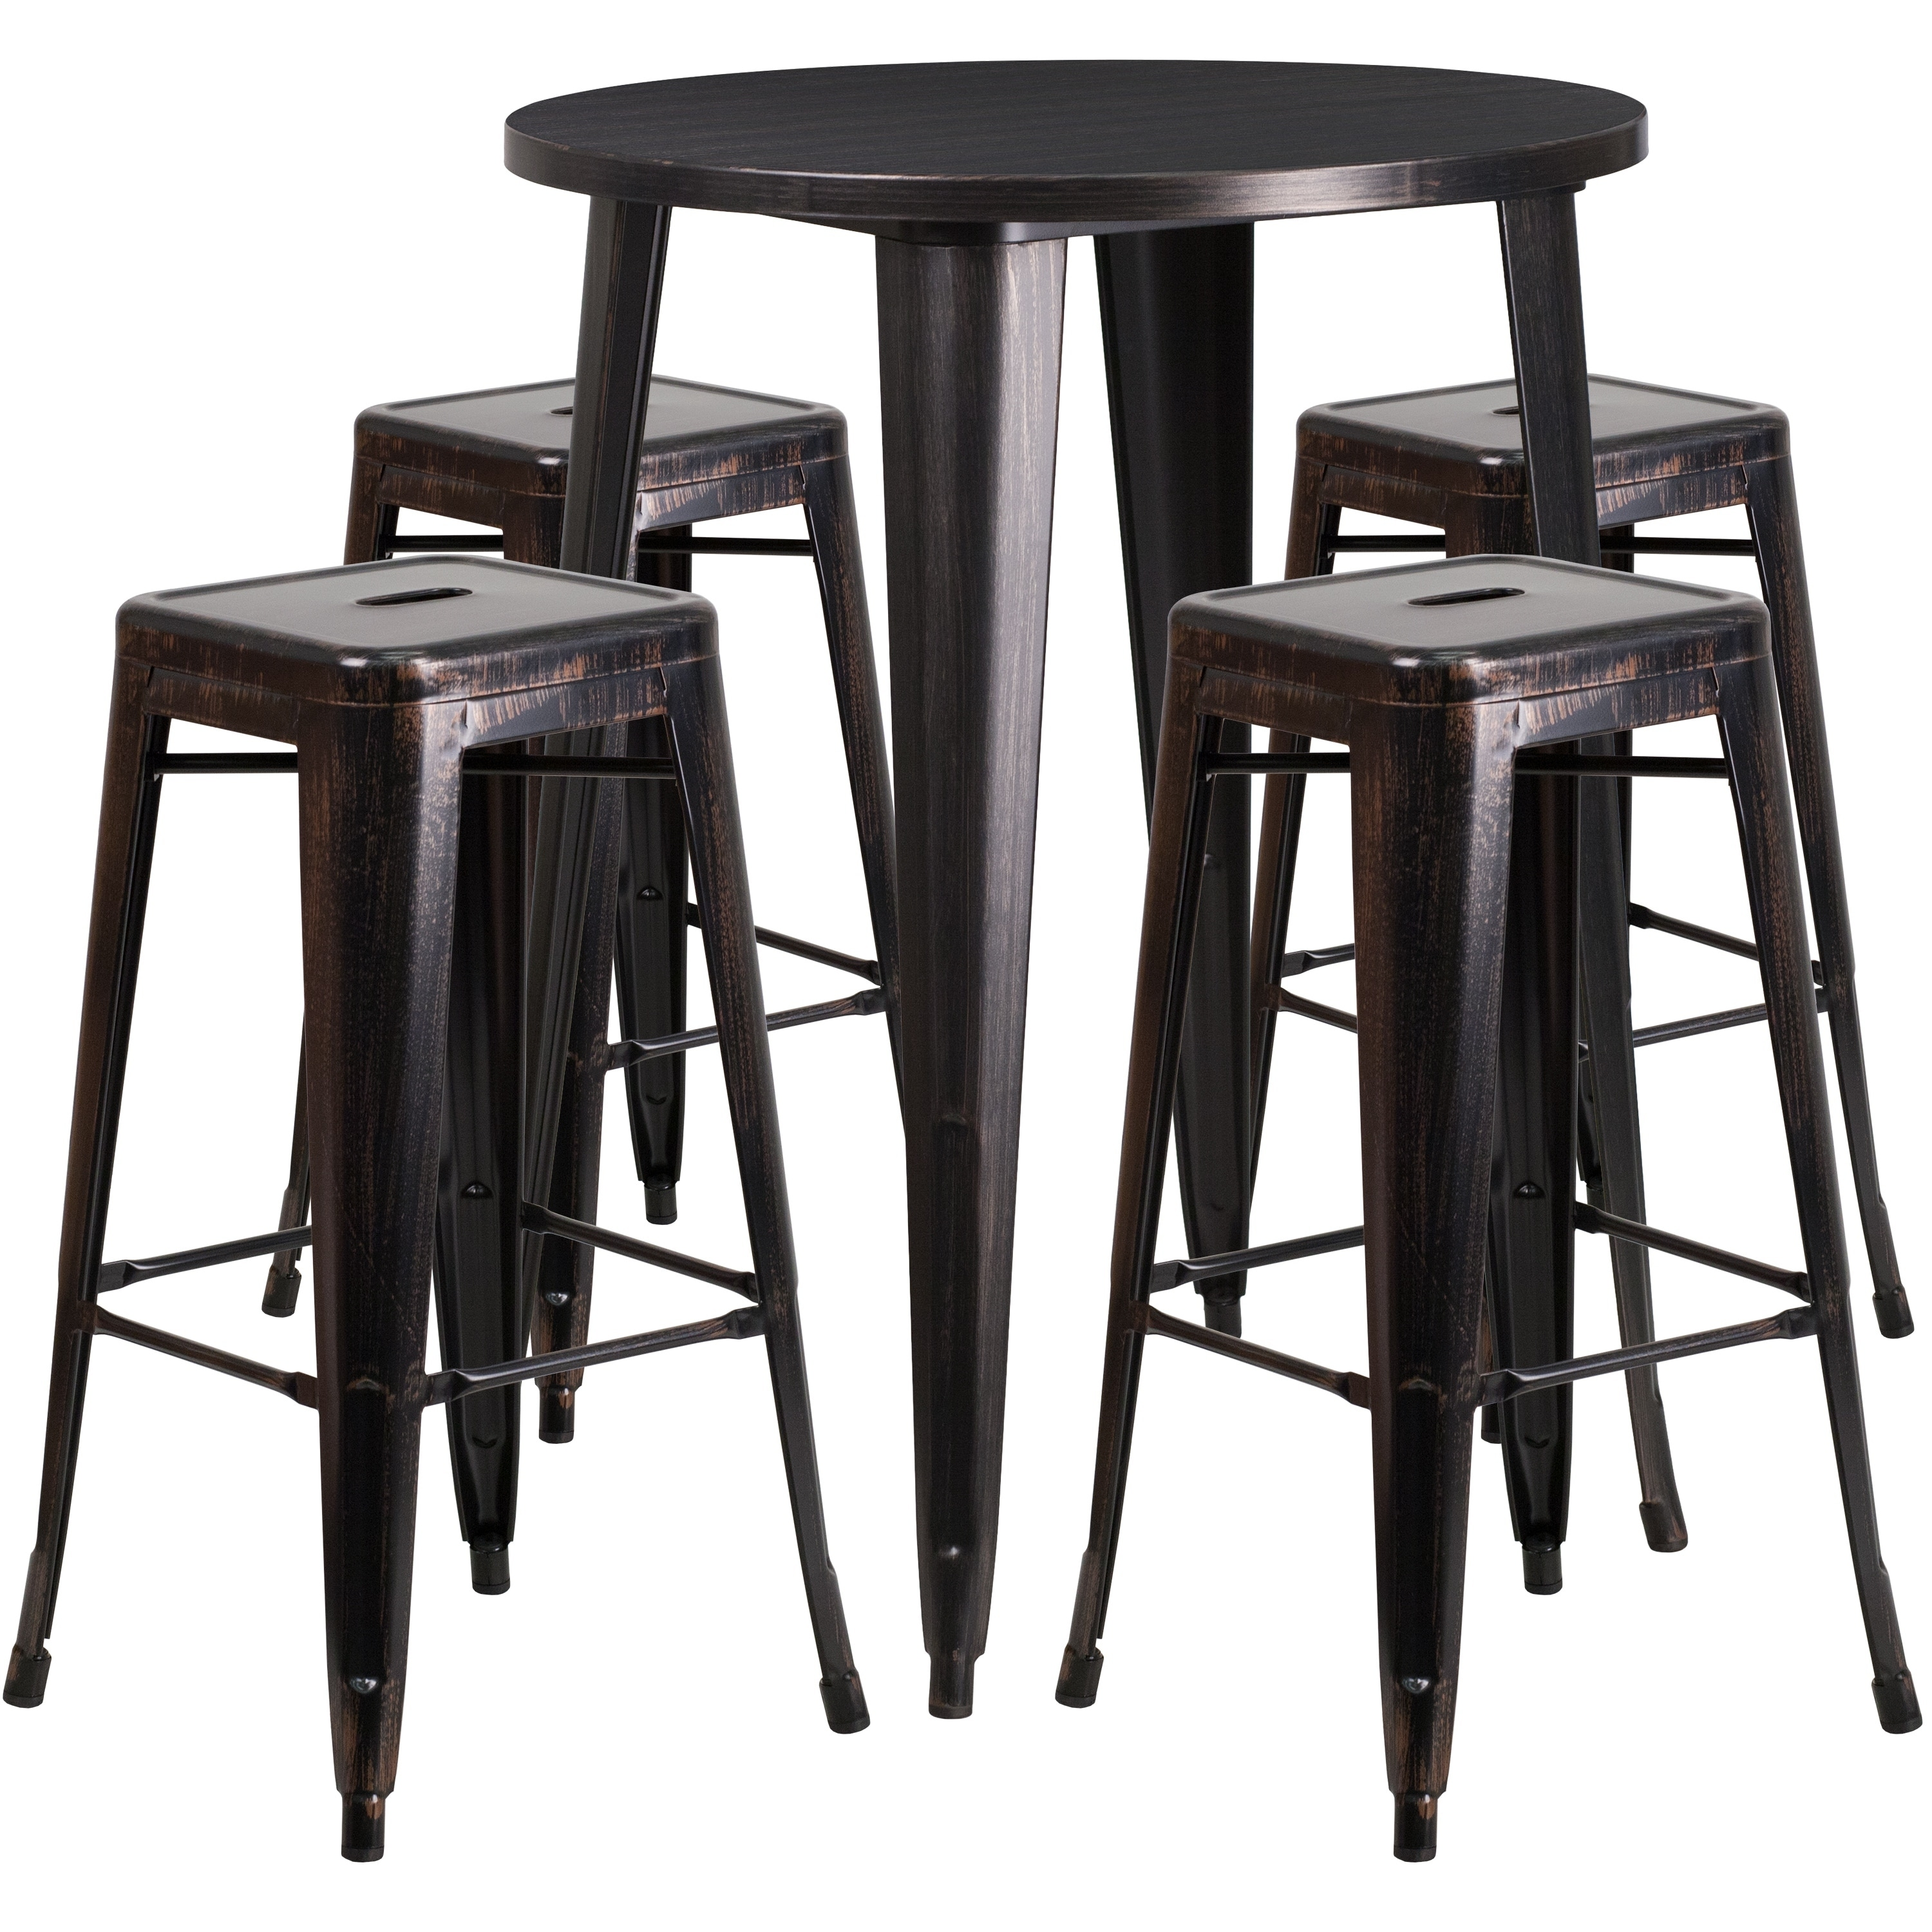 Lancaster Home 30'' Round Metal Indoor-Outdoor Bar Table Set with 4 Square Seat Backless Stools